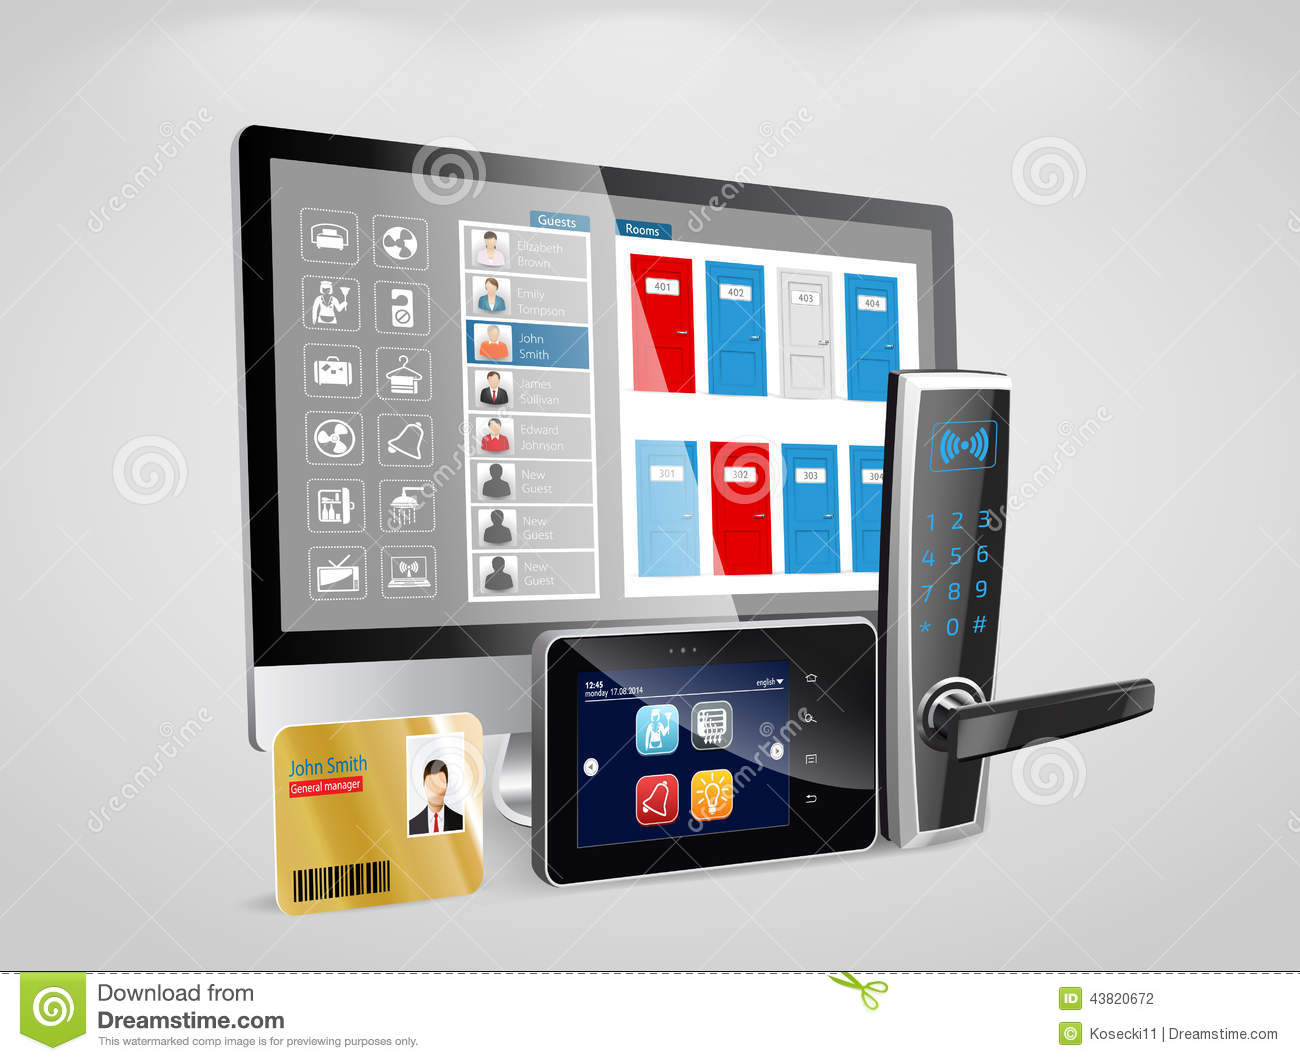 Access Control And Management System Stock Vector